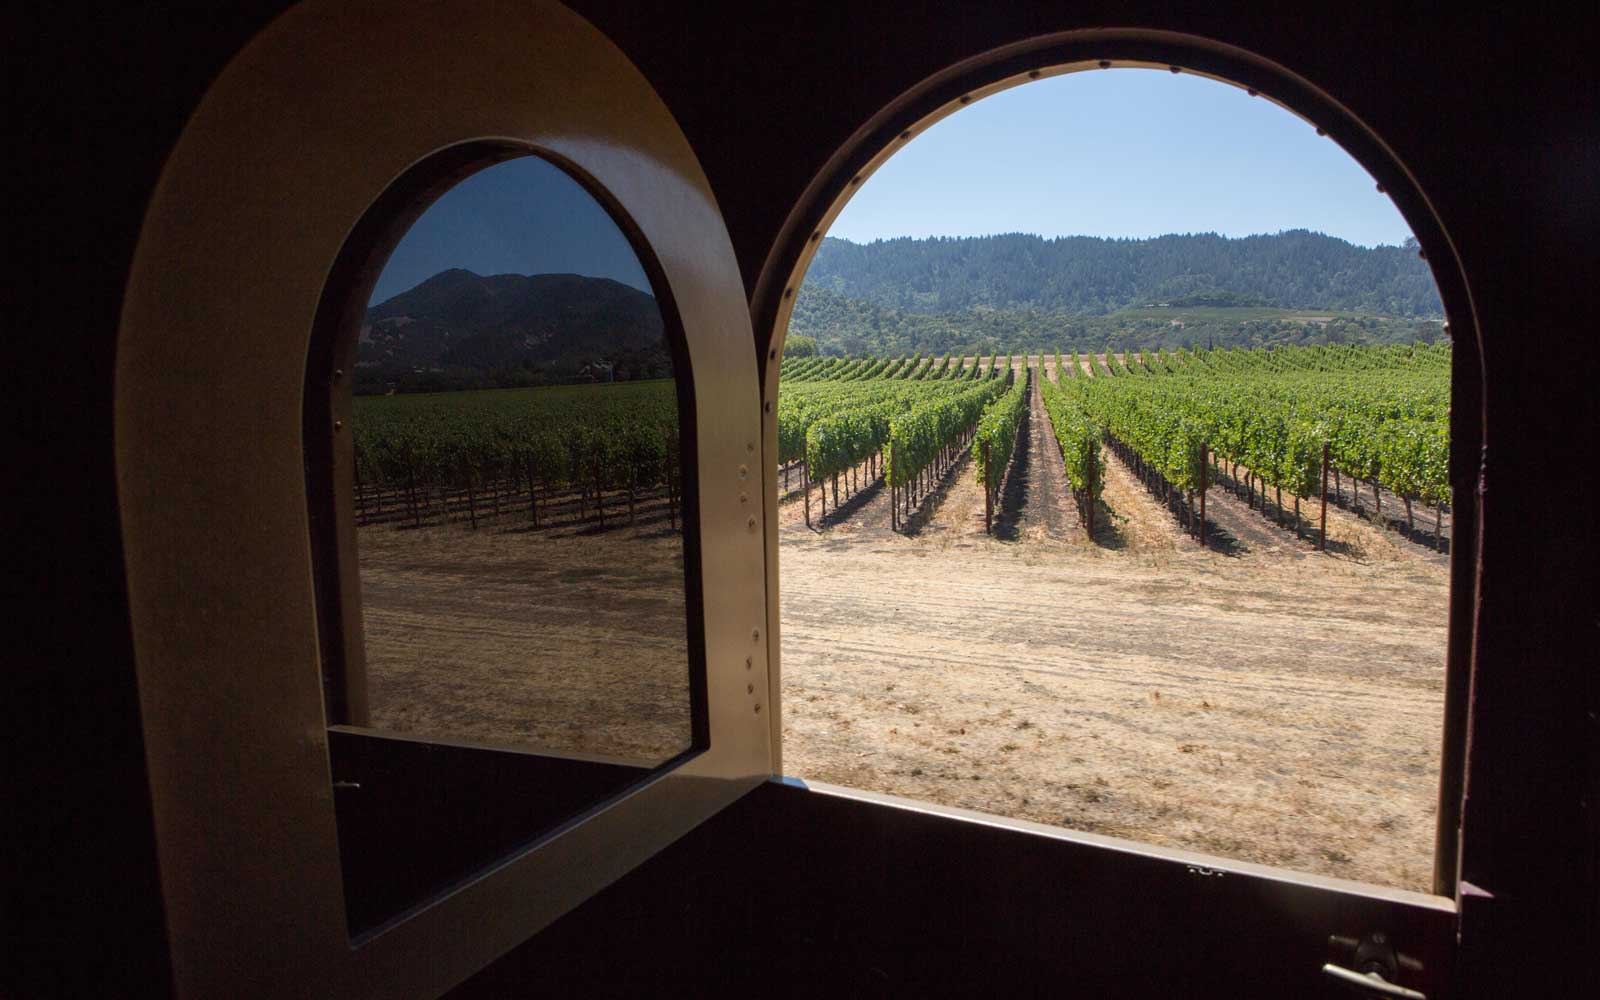 Rows of grape vineyards in Napa Valley are reflected in the window of the Napa Valley wine train.